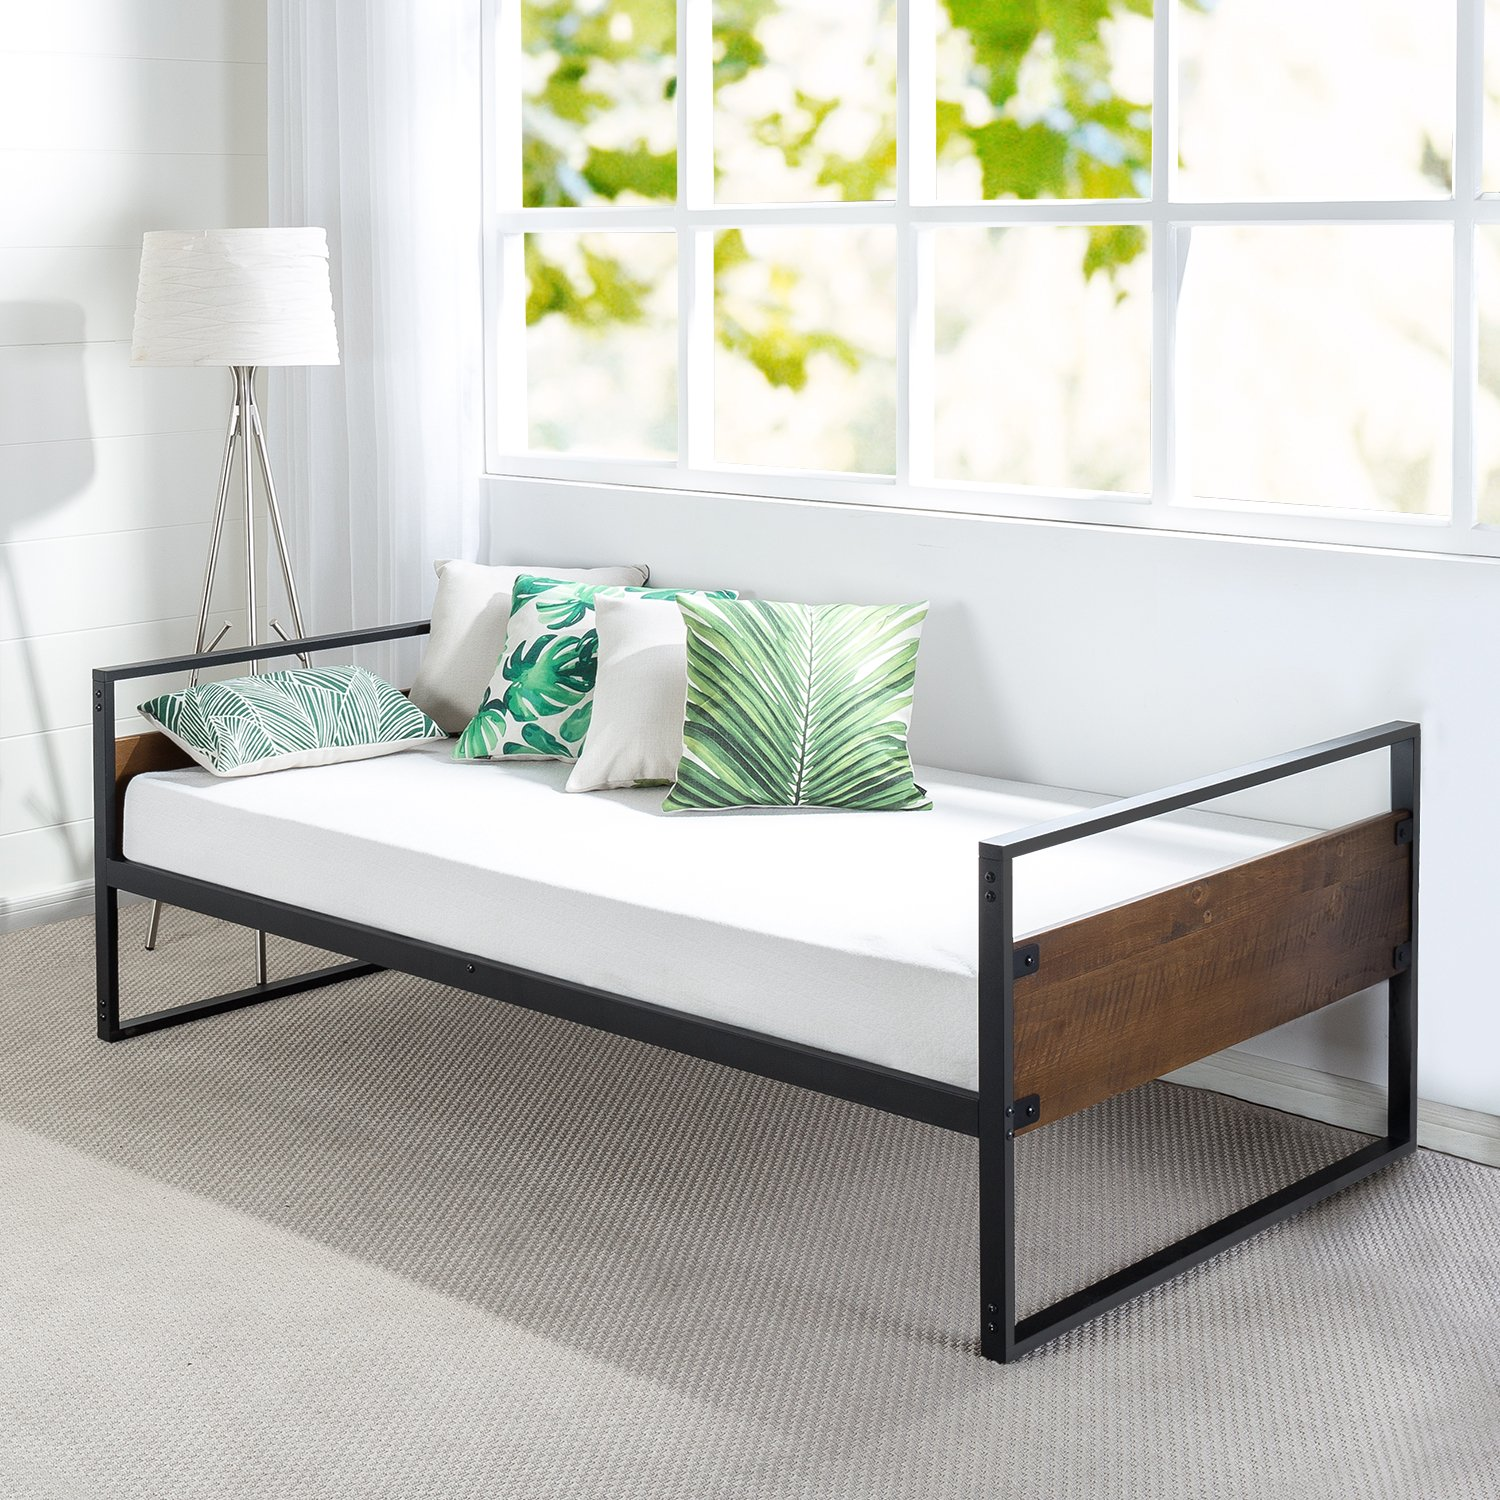 Zinus Suzanne Twin Daybed Frame / Premium Steel Slat Support by Zinus